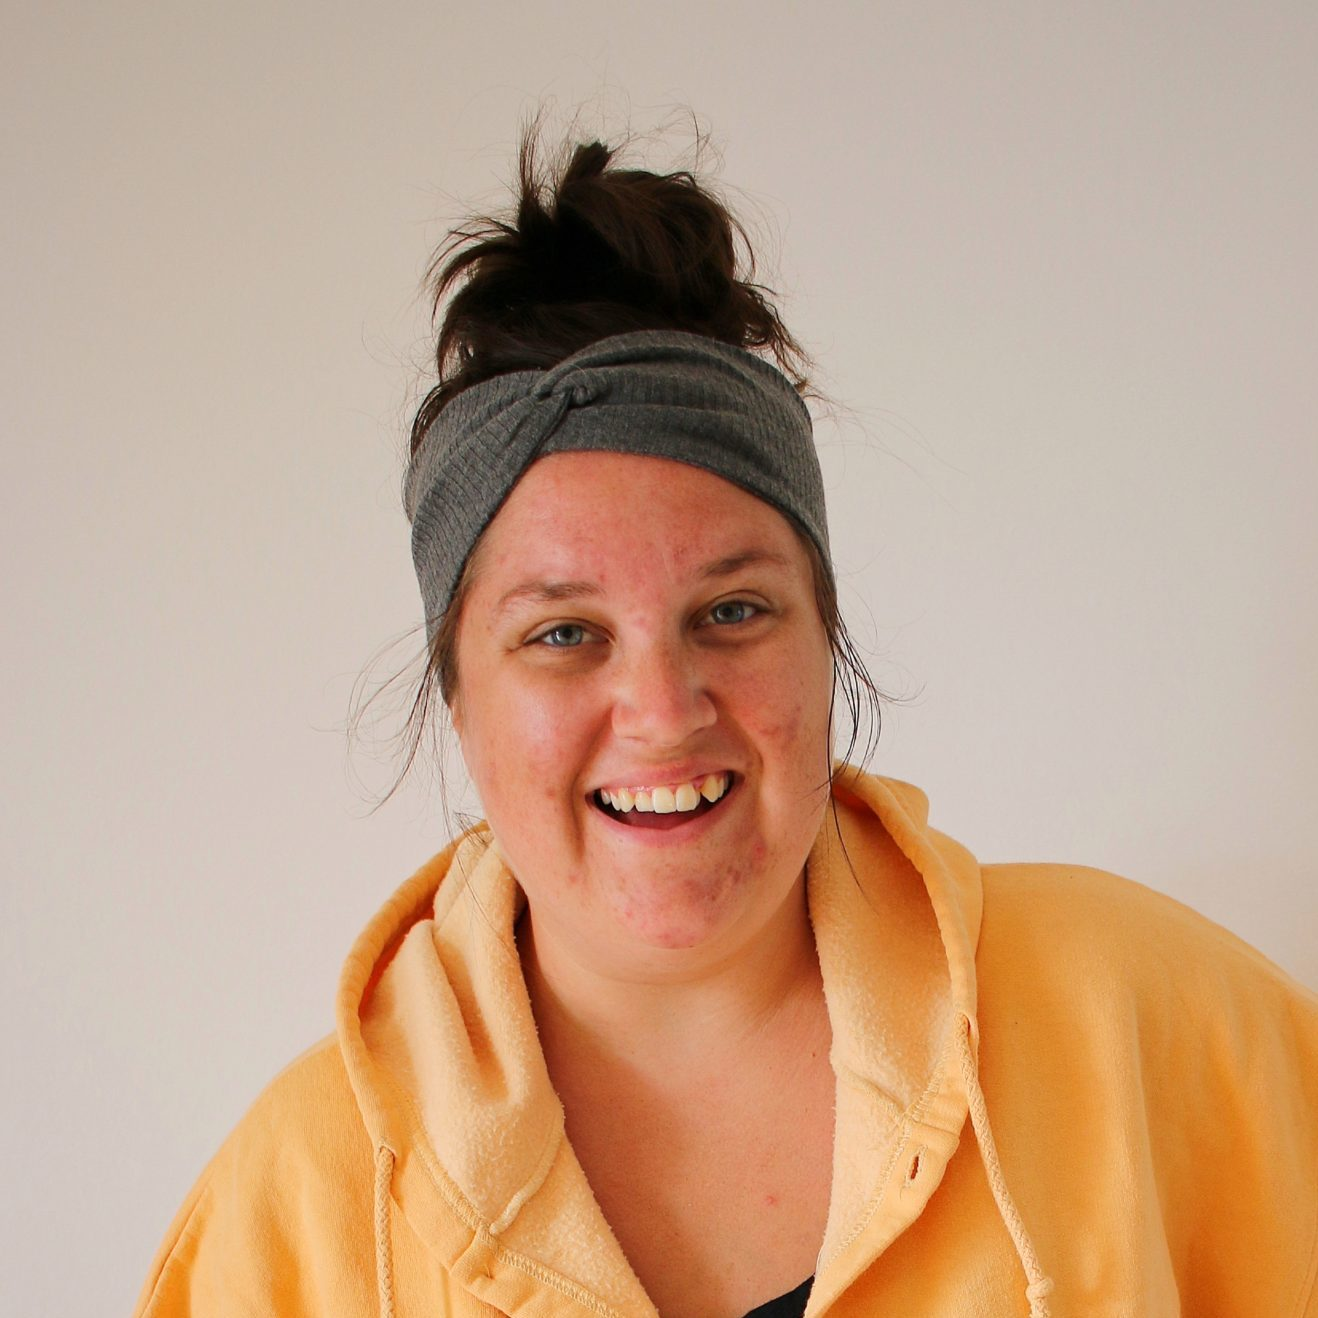 White woman with brown hair up in a bun wearing a grey headband, a golden yellow cropped hoodie and black biker shorts smiles at the camera